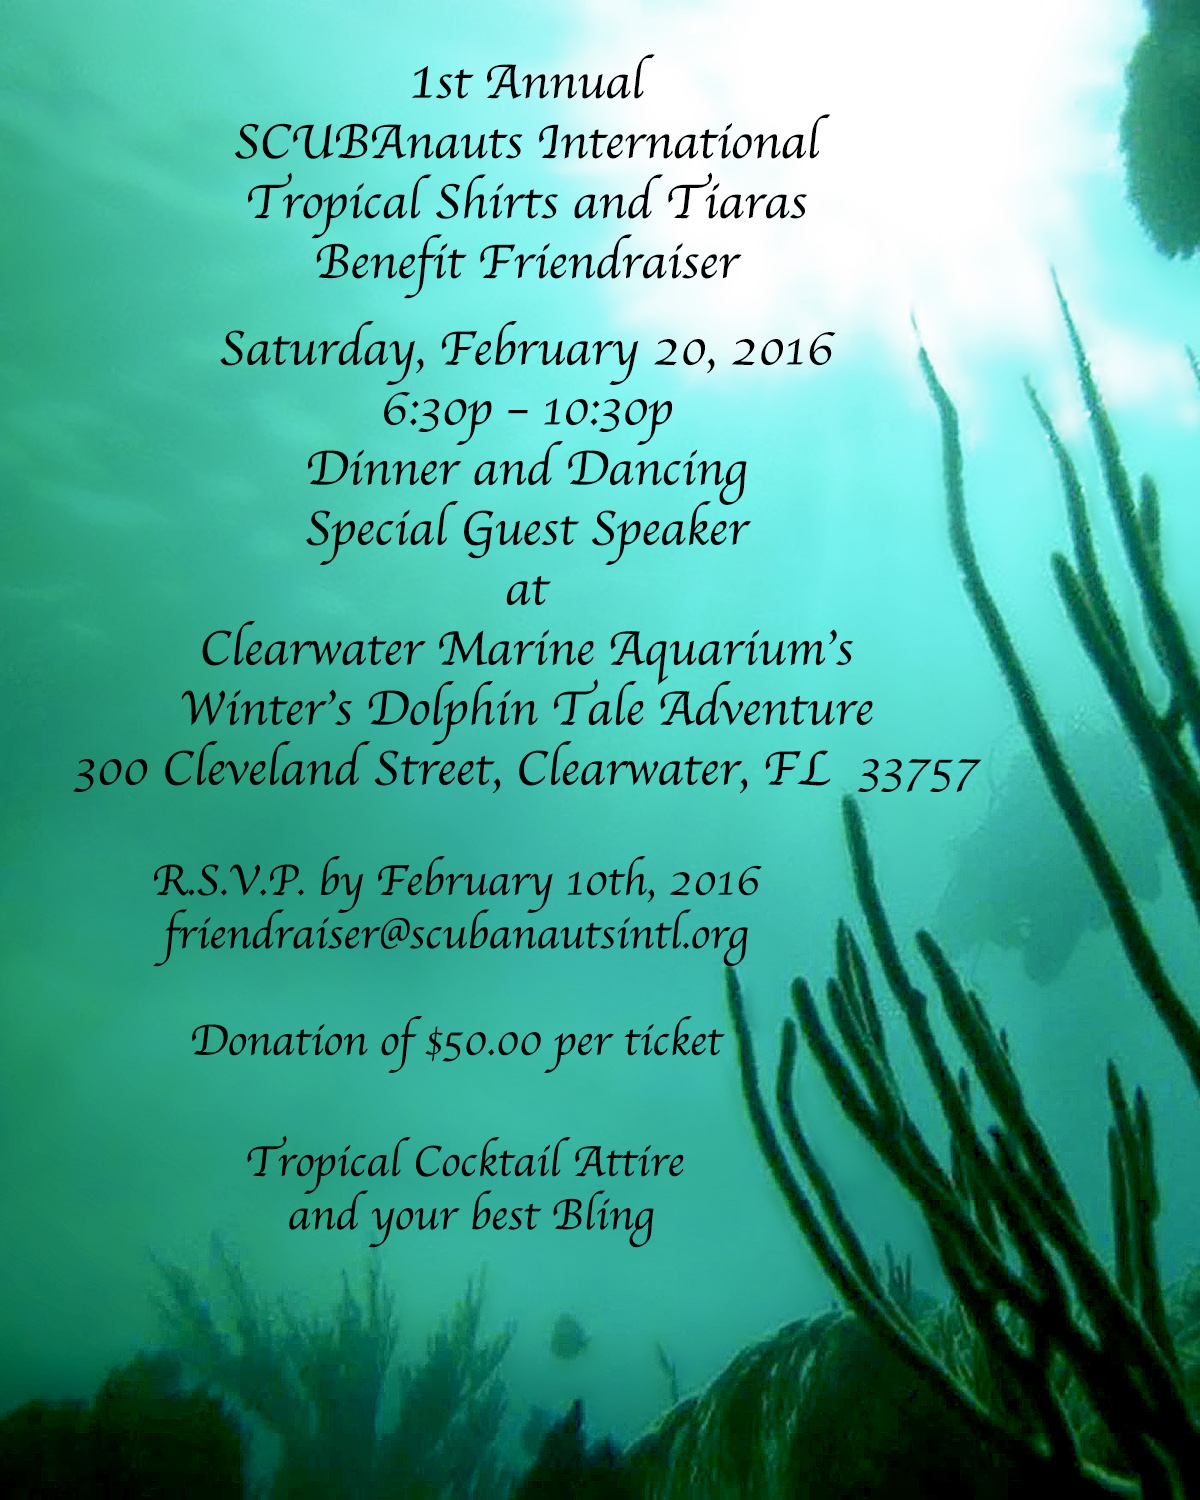 The 1st Annual Tropical Shirts and Tiaras Benefit Friendraiser!